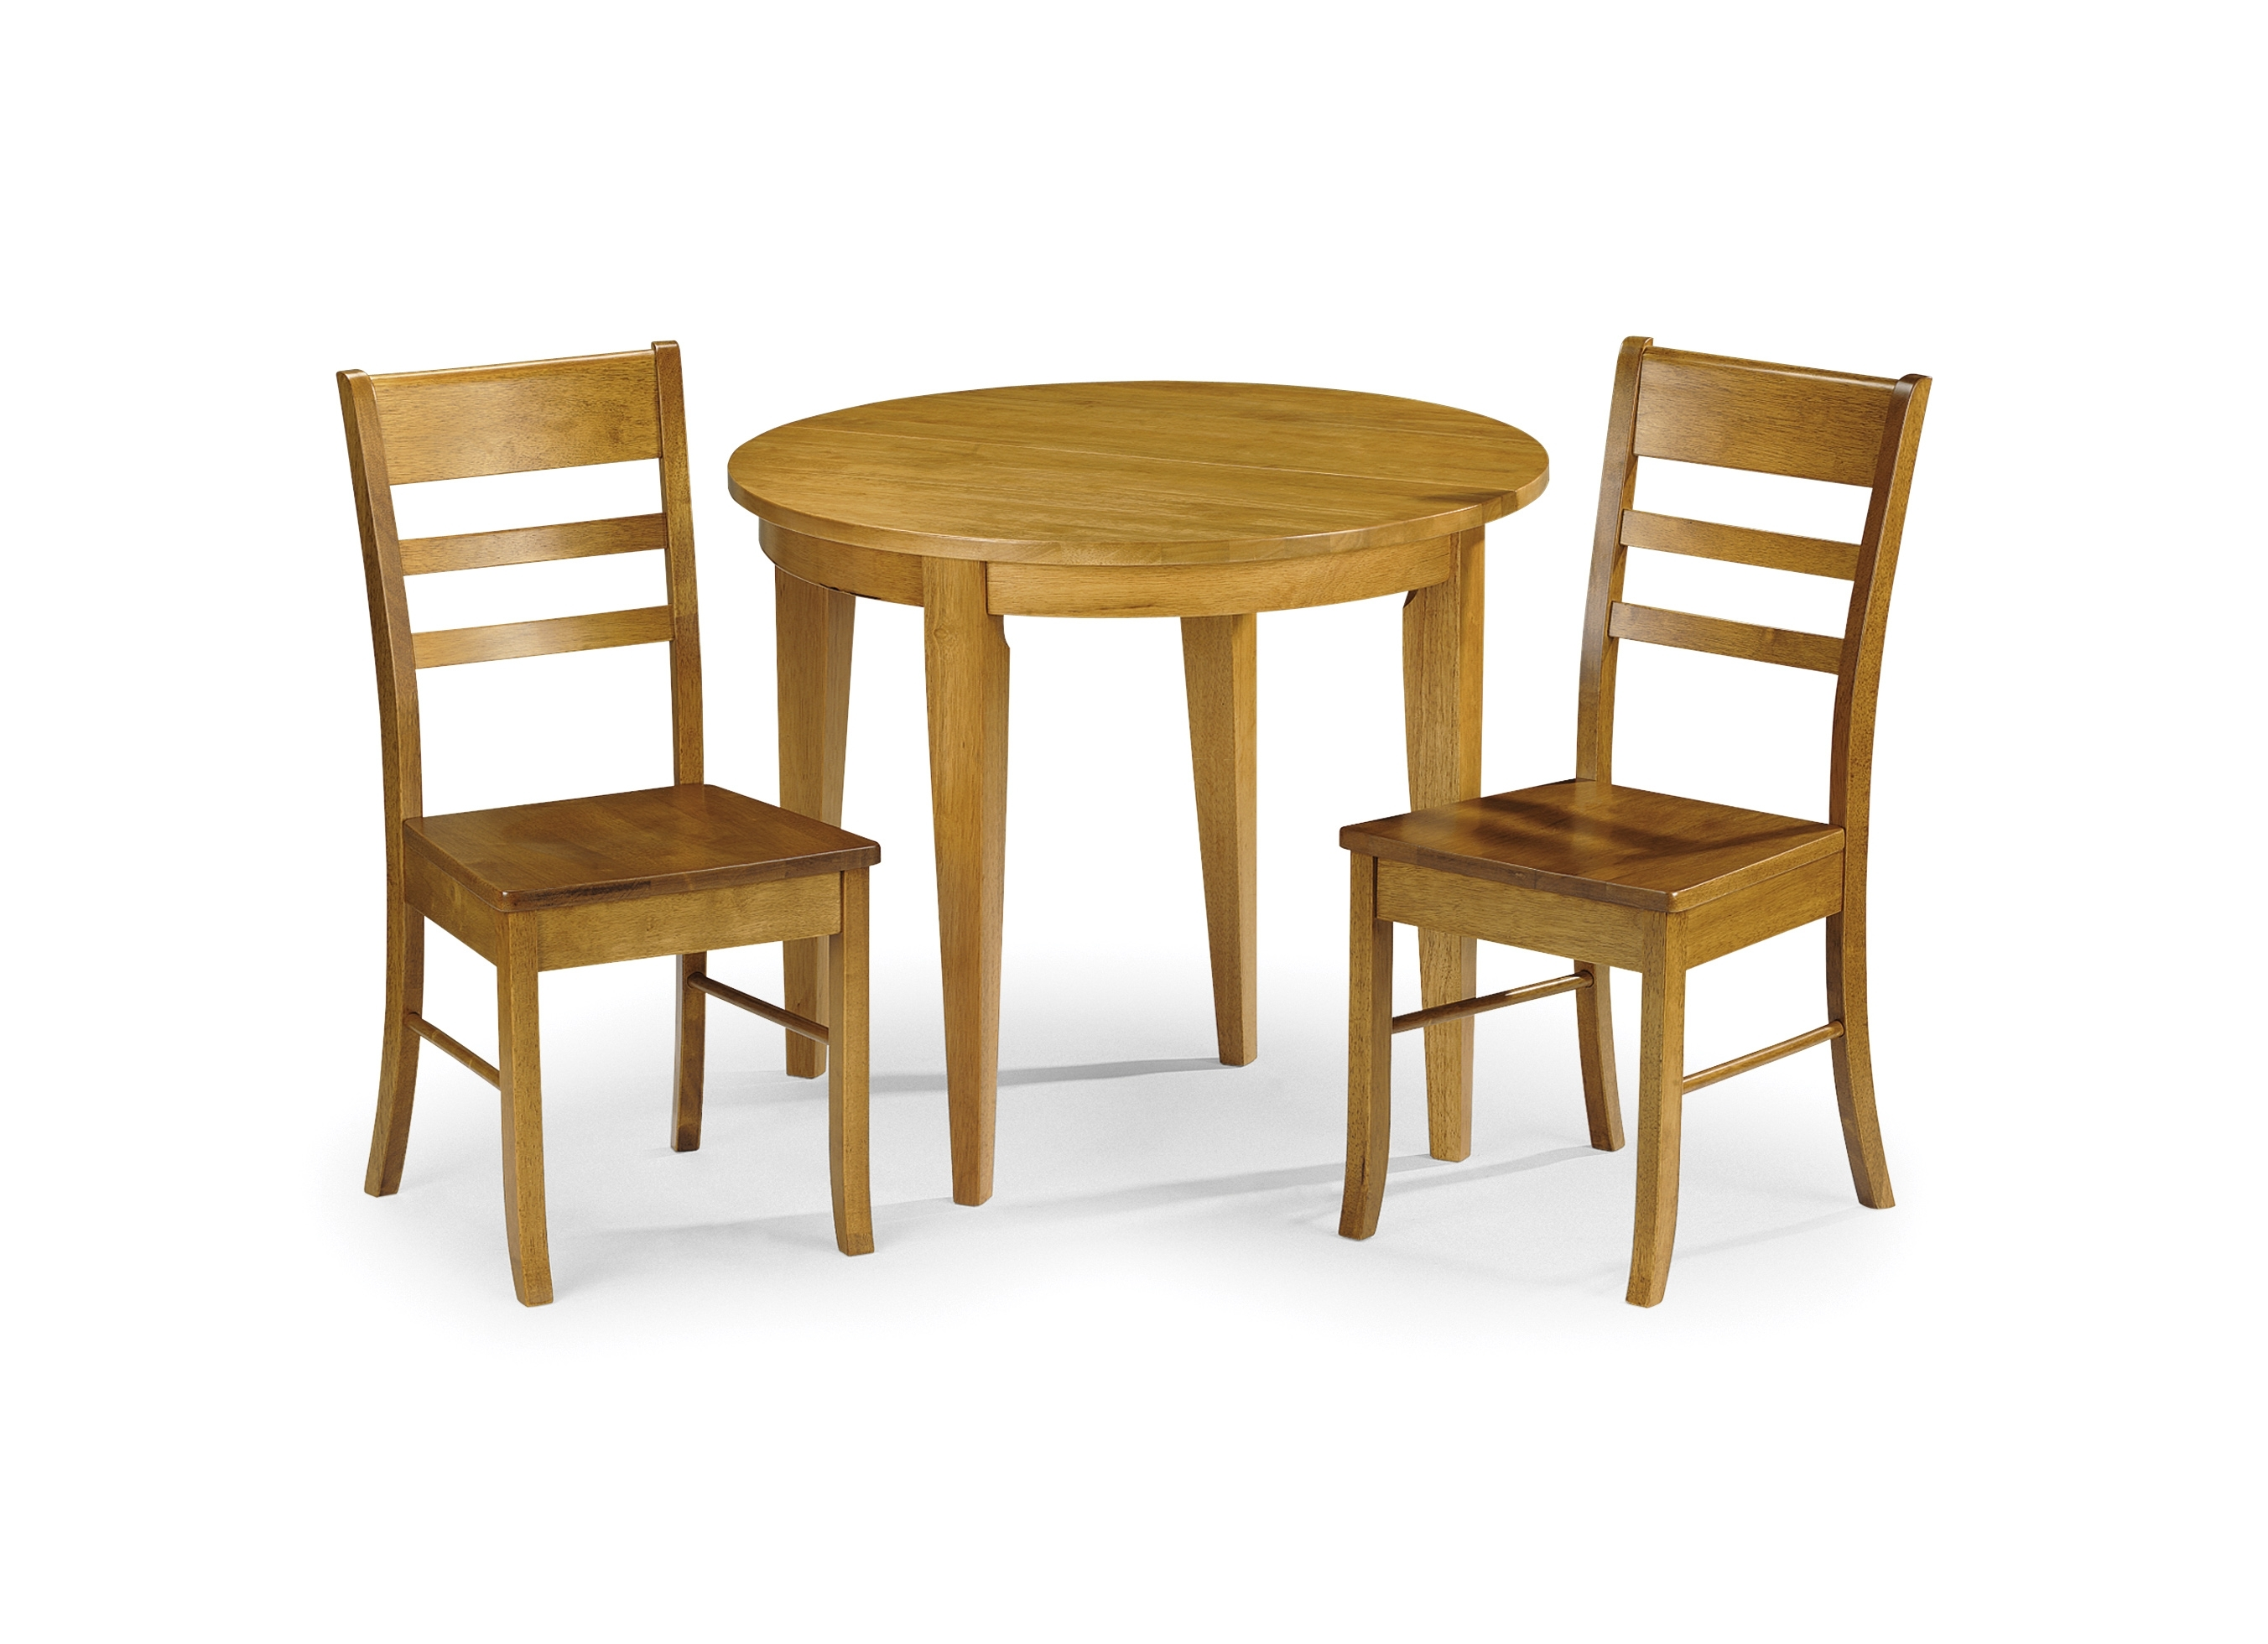 Well Known Julian Bowen Consort Half Moon Dining Table And Chairs In Pine With Half Moon Dining Table Sets (View 24 of 25)